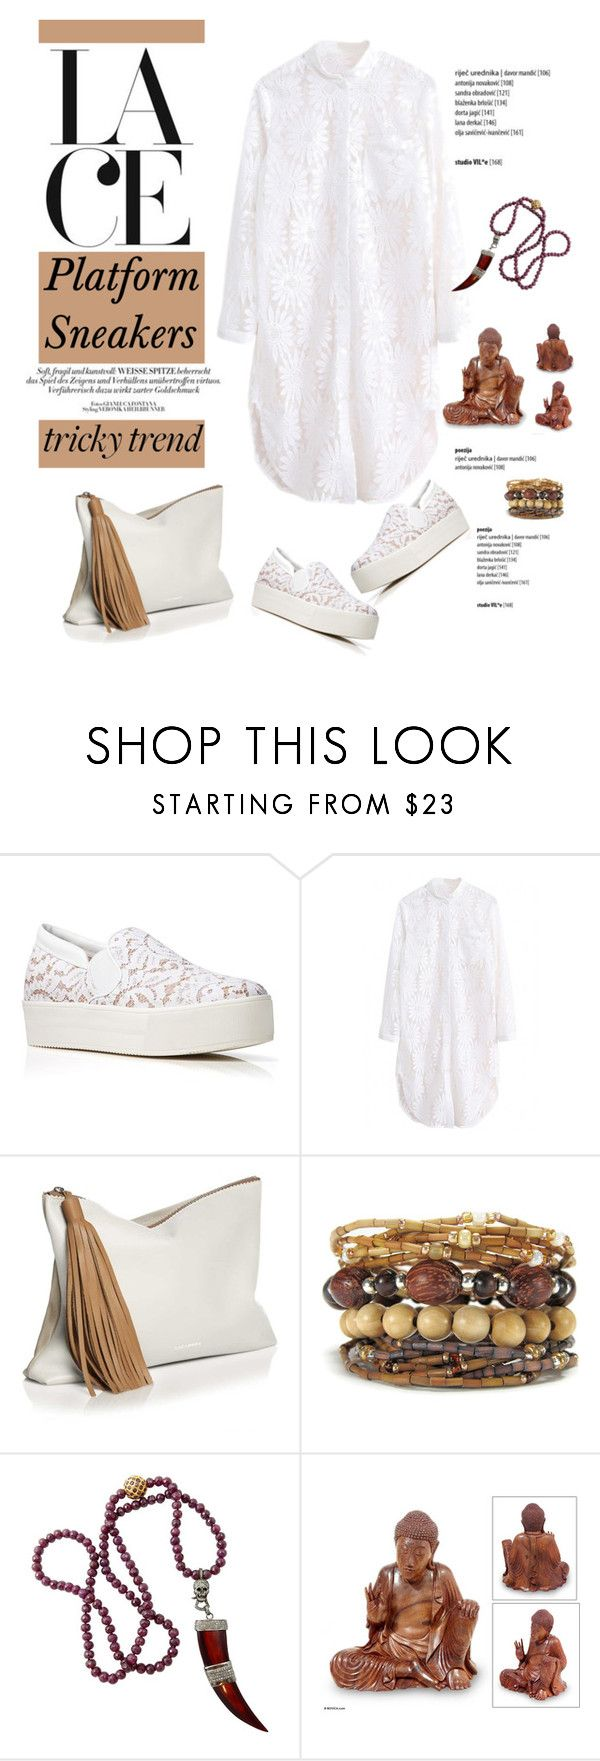 """""""Tricky Trend: Platform Sneakers"""" by cruzeirodotejo ❤ liked on Polyvore featuring N°21, CB Bronfman, NOVICA, TrickyTrend, white, minimal, nude and platformsneakers"""